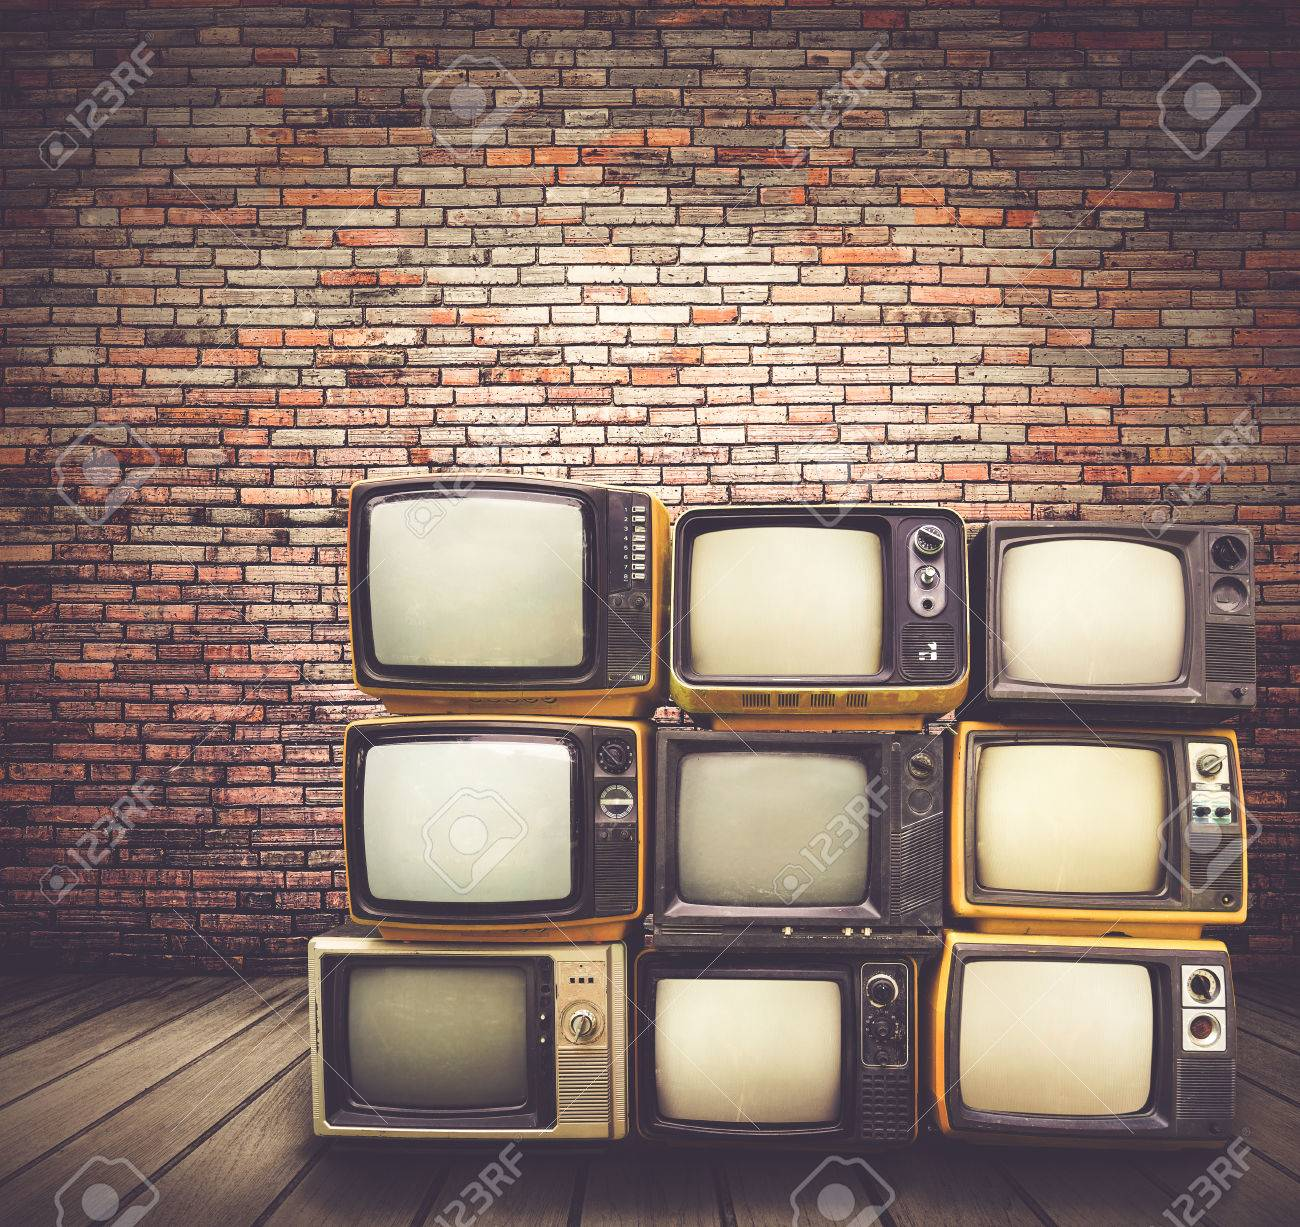 antique and vintage style photo retro televisions pile on floor